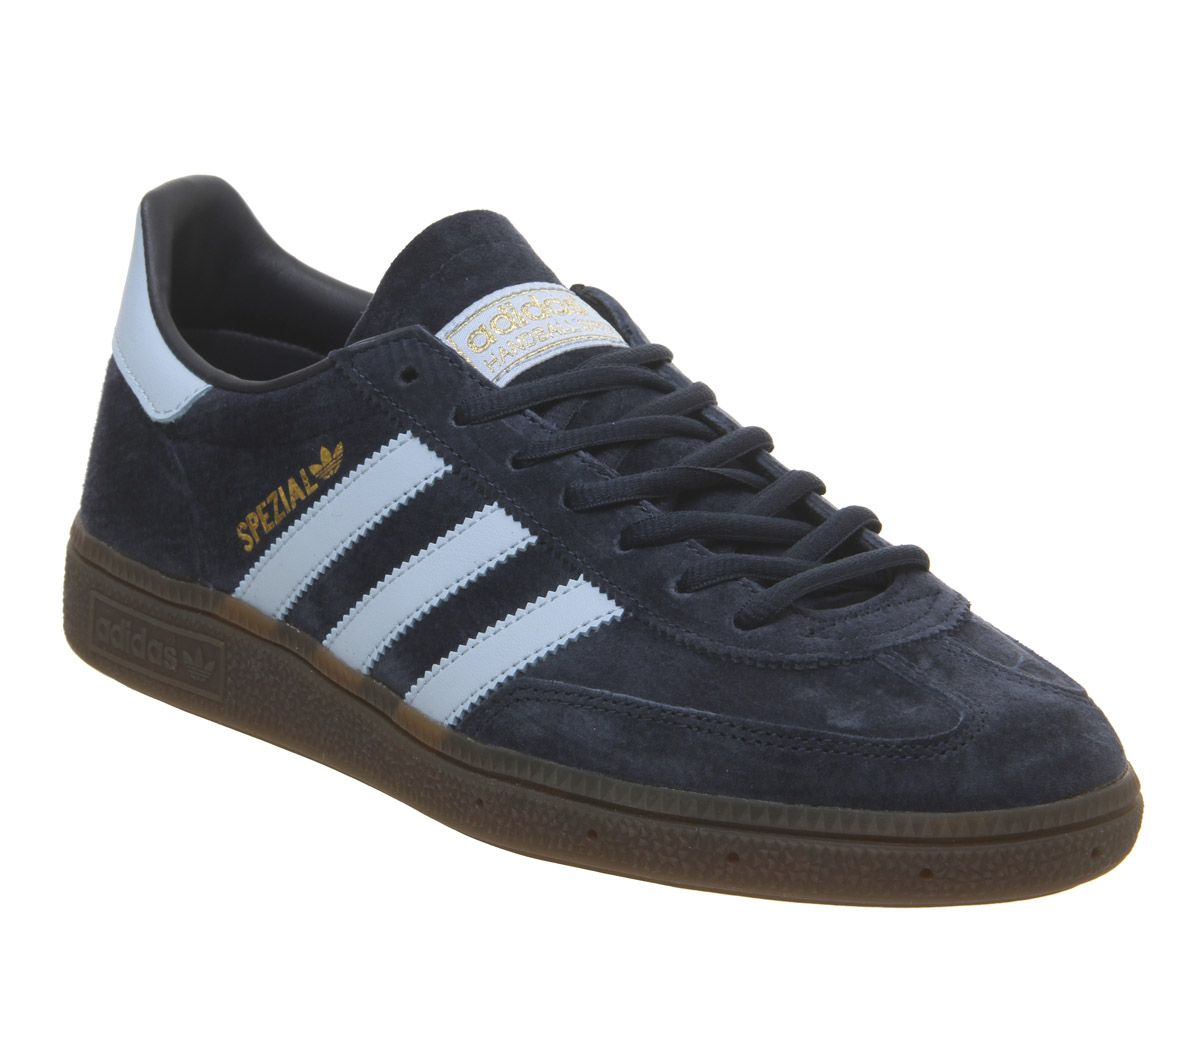 71f36b52b9 adidas Handball Spezial Trainers Collegiate Navy Clear Sky Gum - His ...